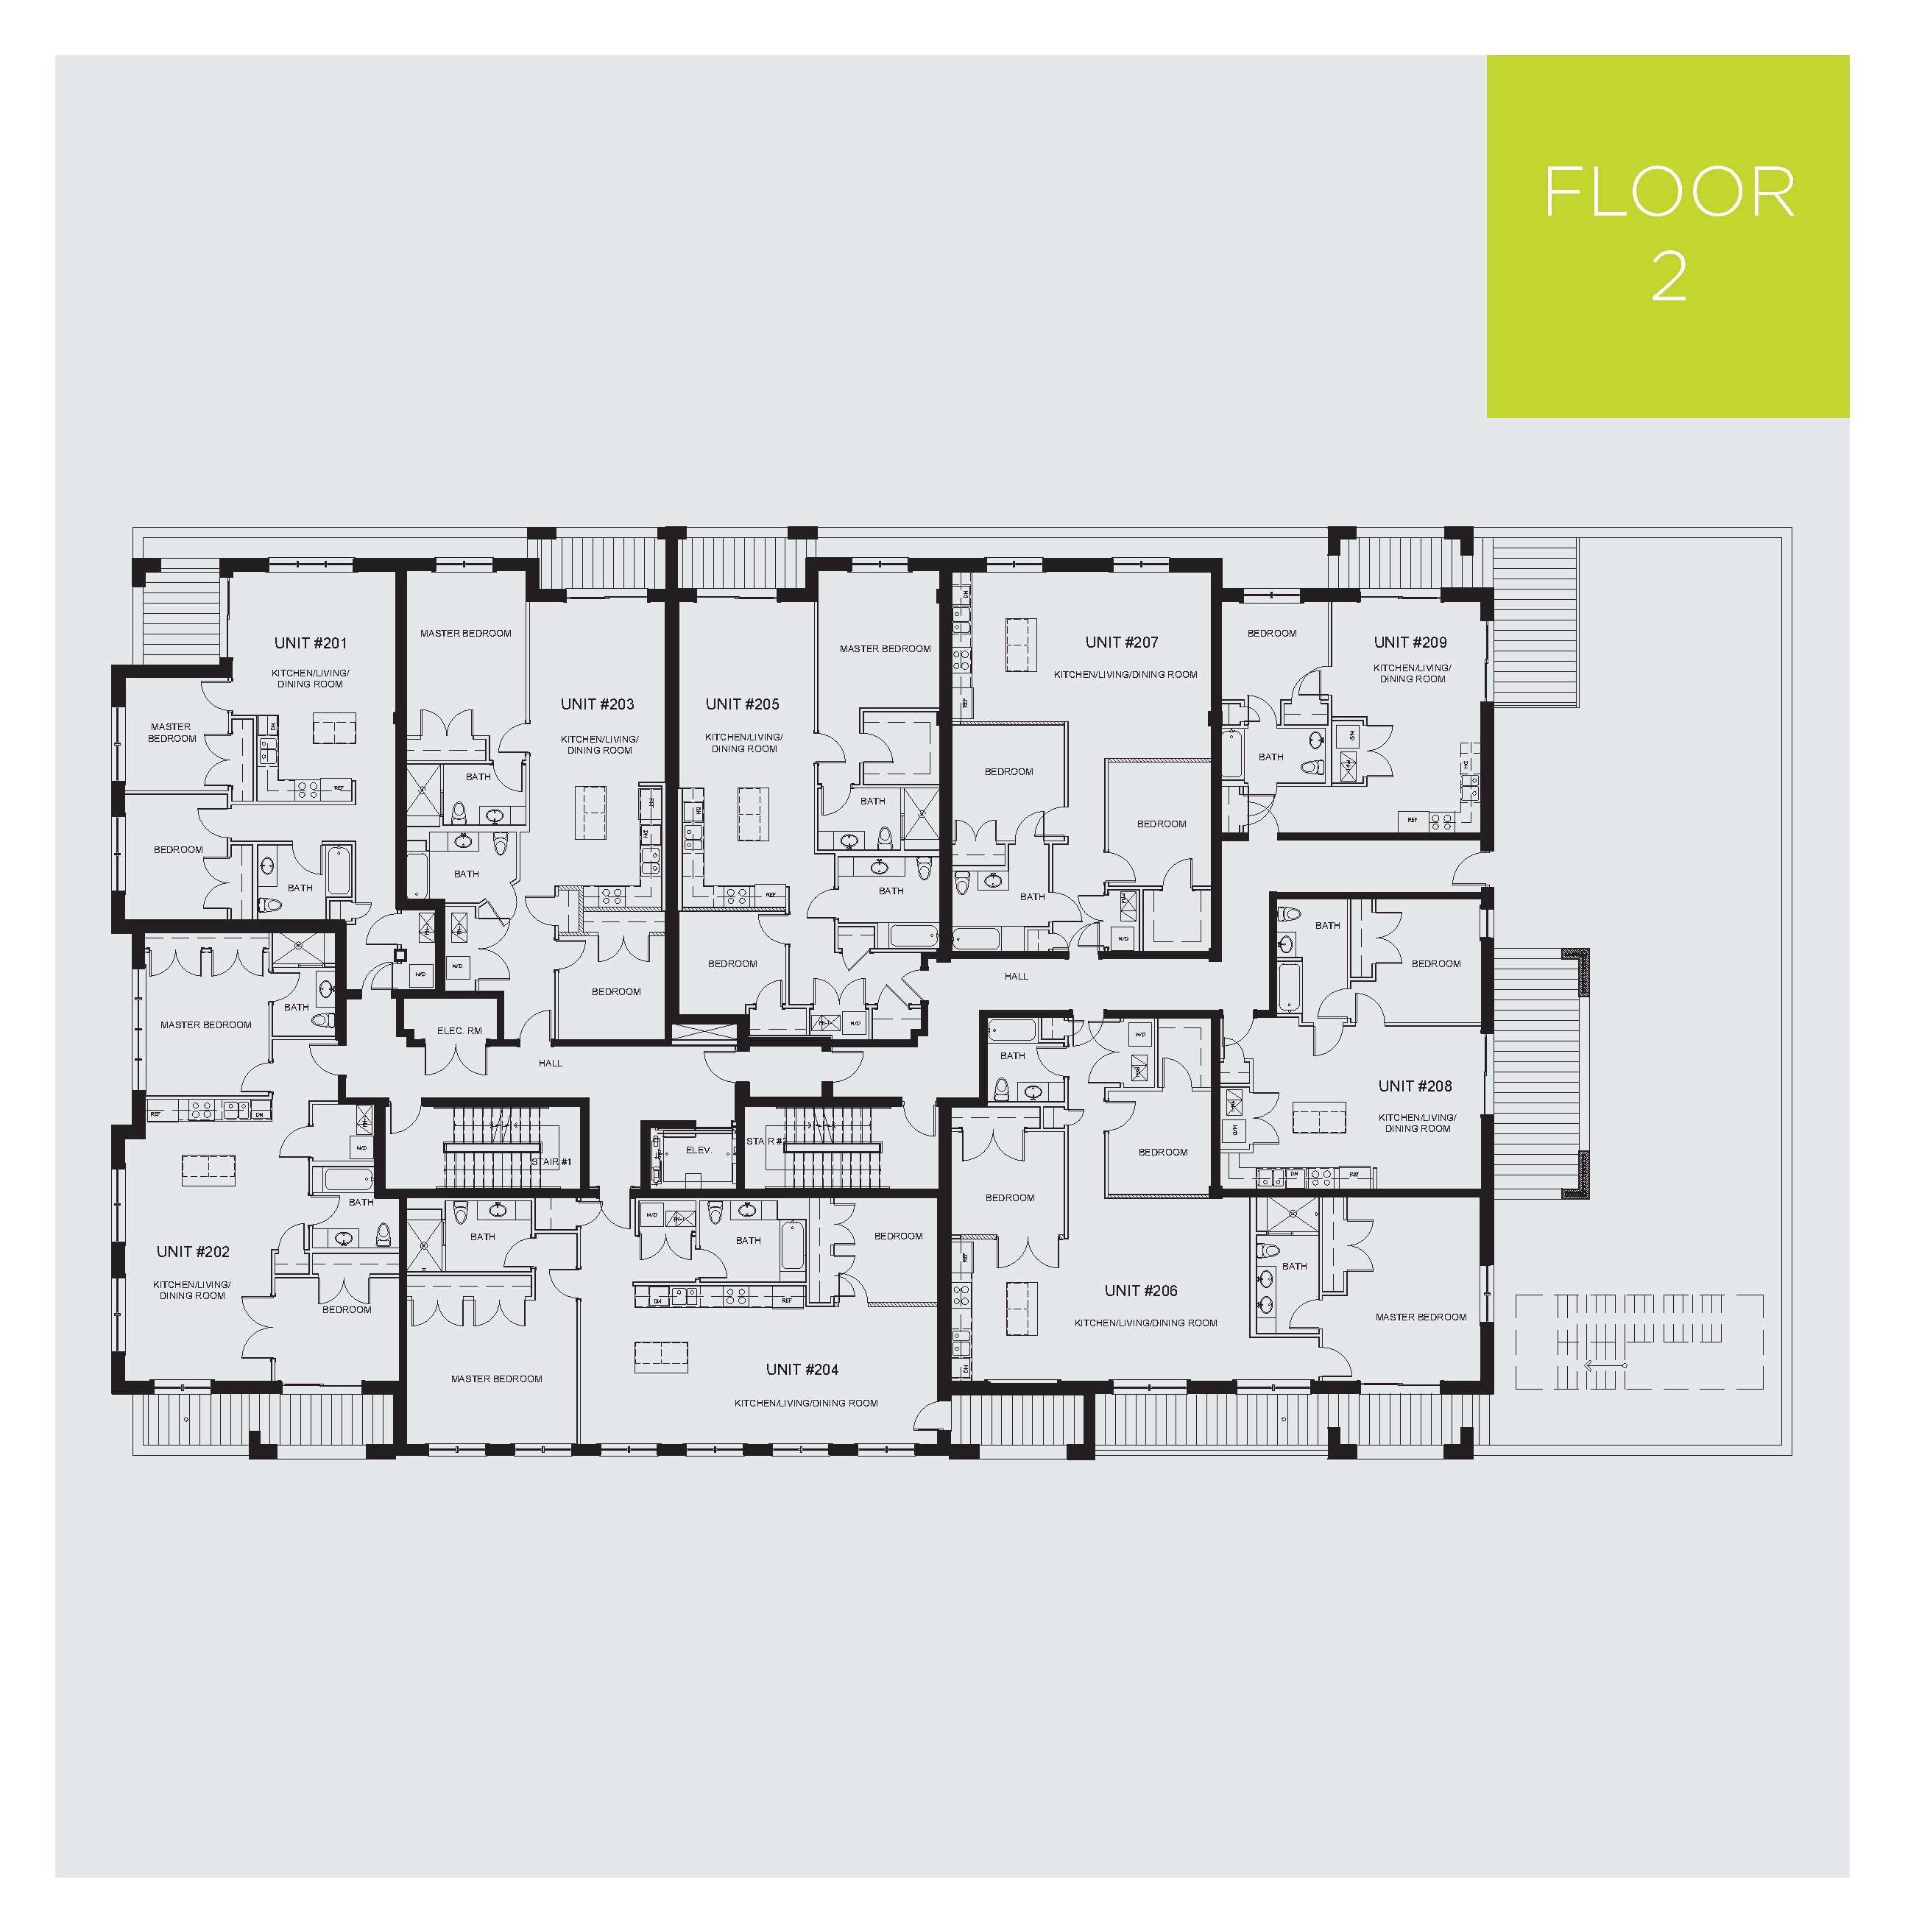 Apartment building floor plans with dimensions for Apartment complex building plans